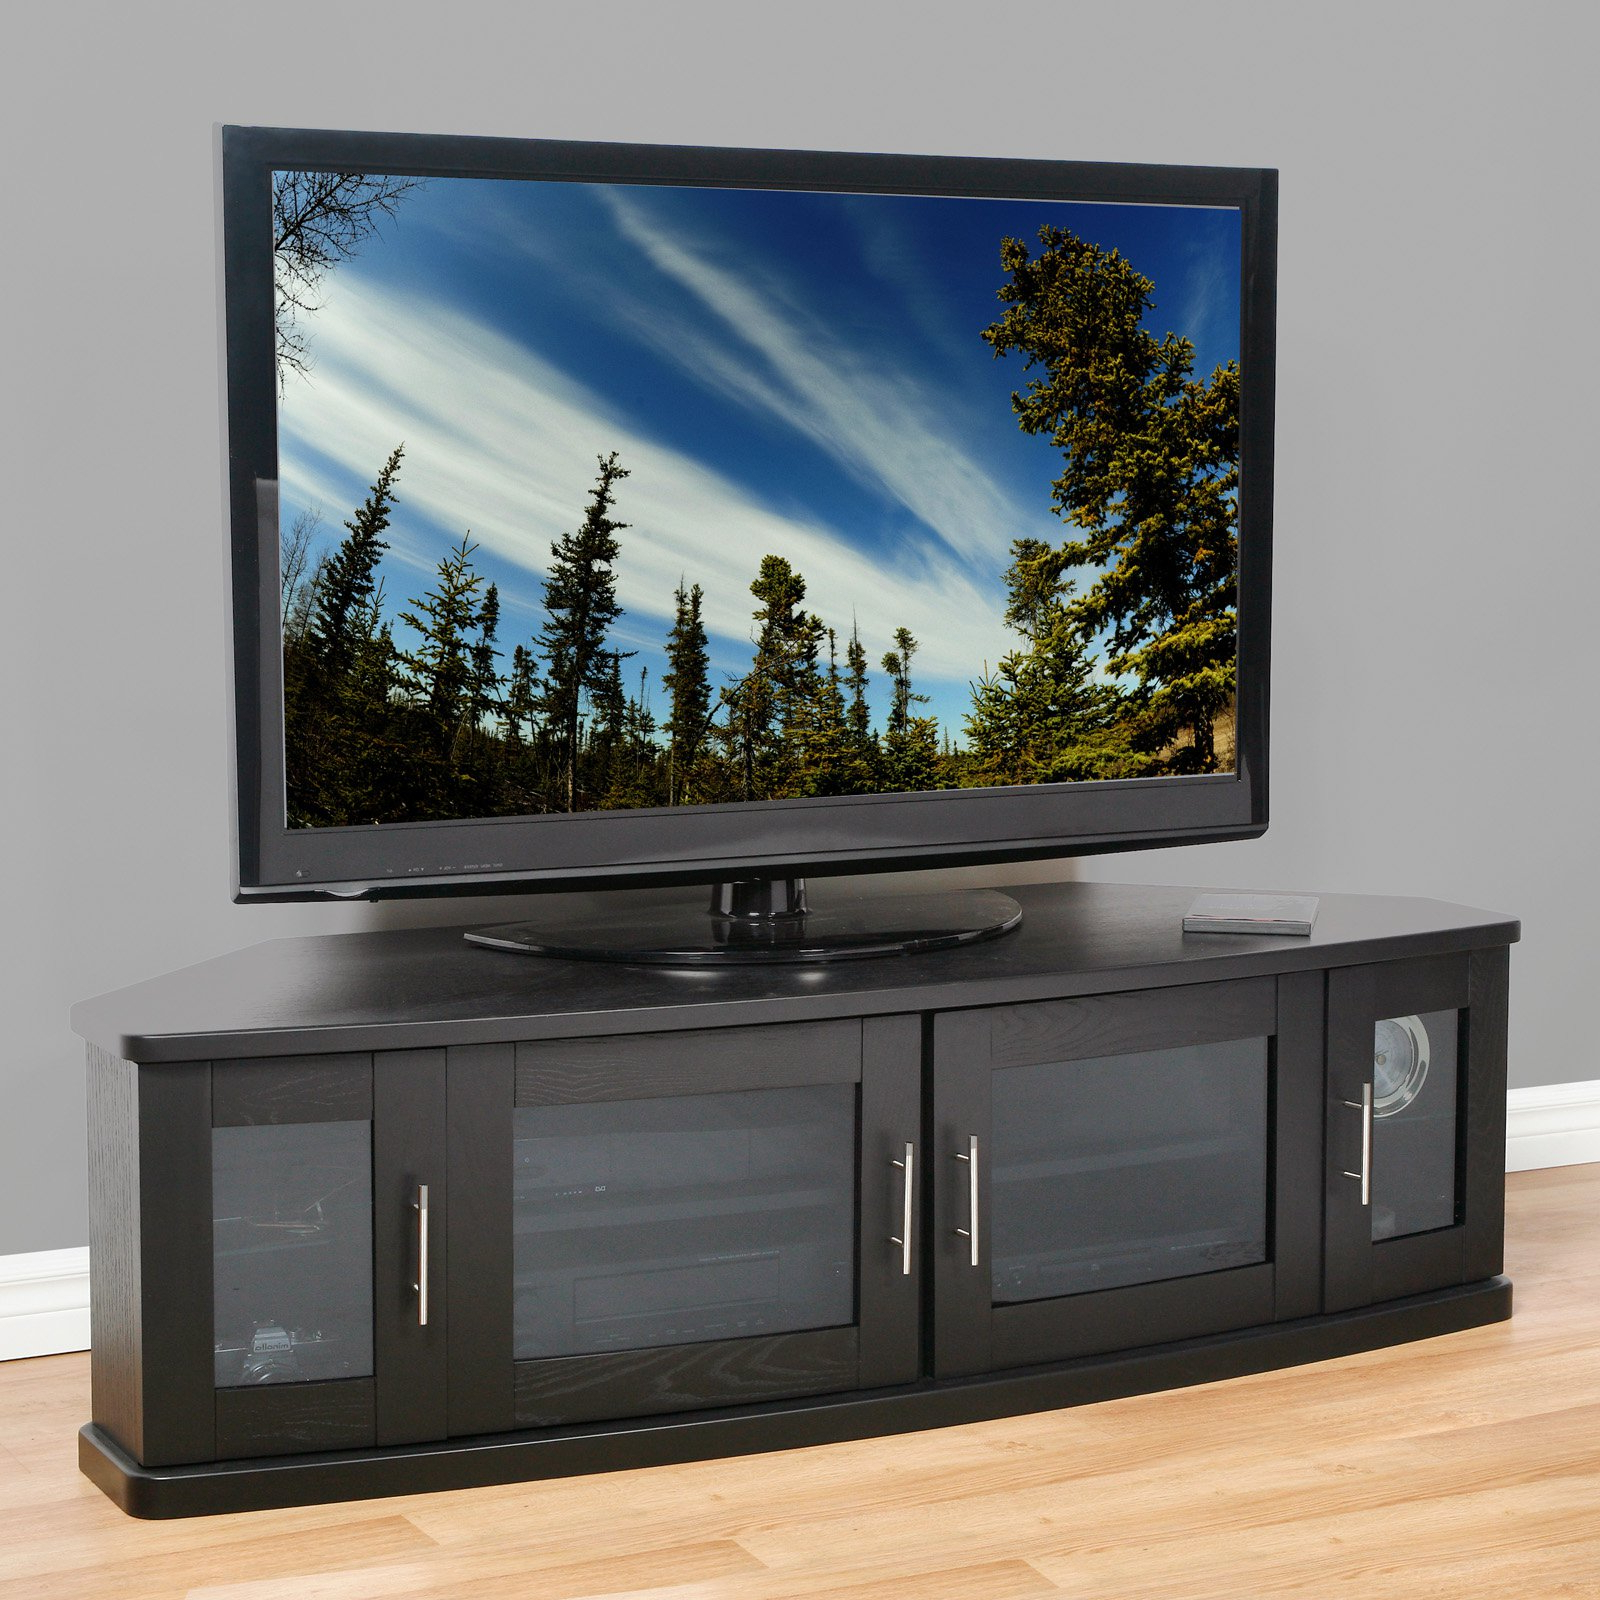 Best And Newest Plateau Newport 62 Inch Corner Tv Stand In Black – Walmart With Regard To Black Corner Tv Stands For Tvs Up To  (View 5 of 20)